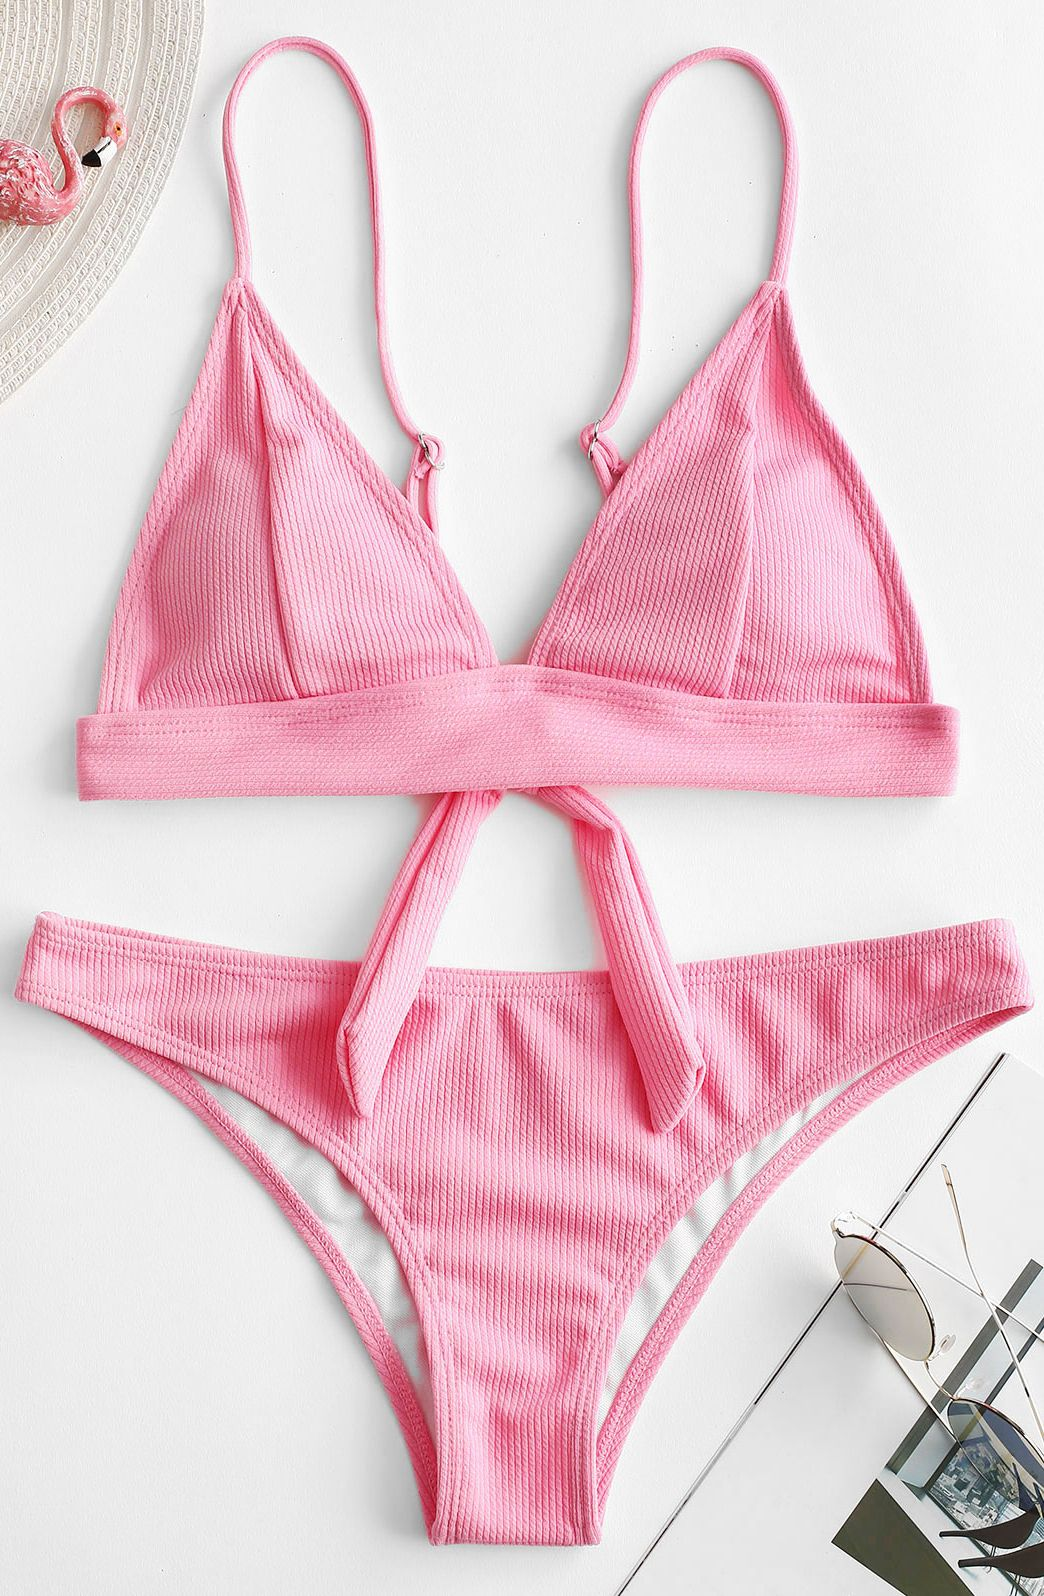 6e55d30766f Style: Sexy Swimwear Type: Bikini Gender: For Women Material:  Polyester,Spandex Bra Style: Padded Support Type: Wire Free Collar-line:  Spaghetti Straps ...